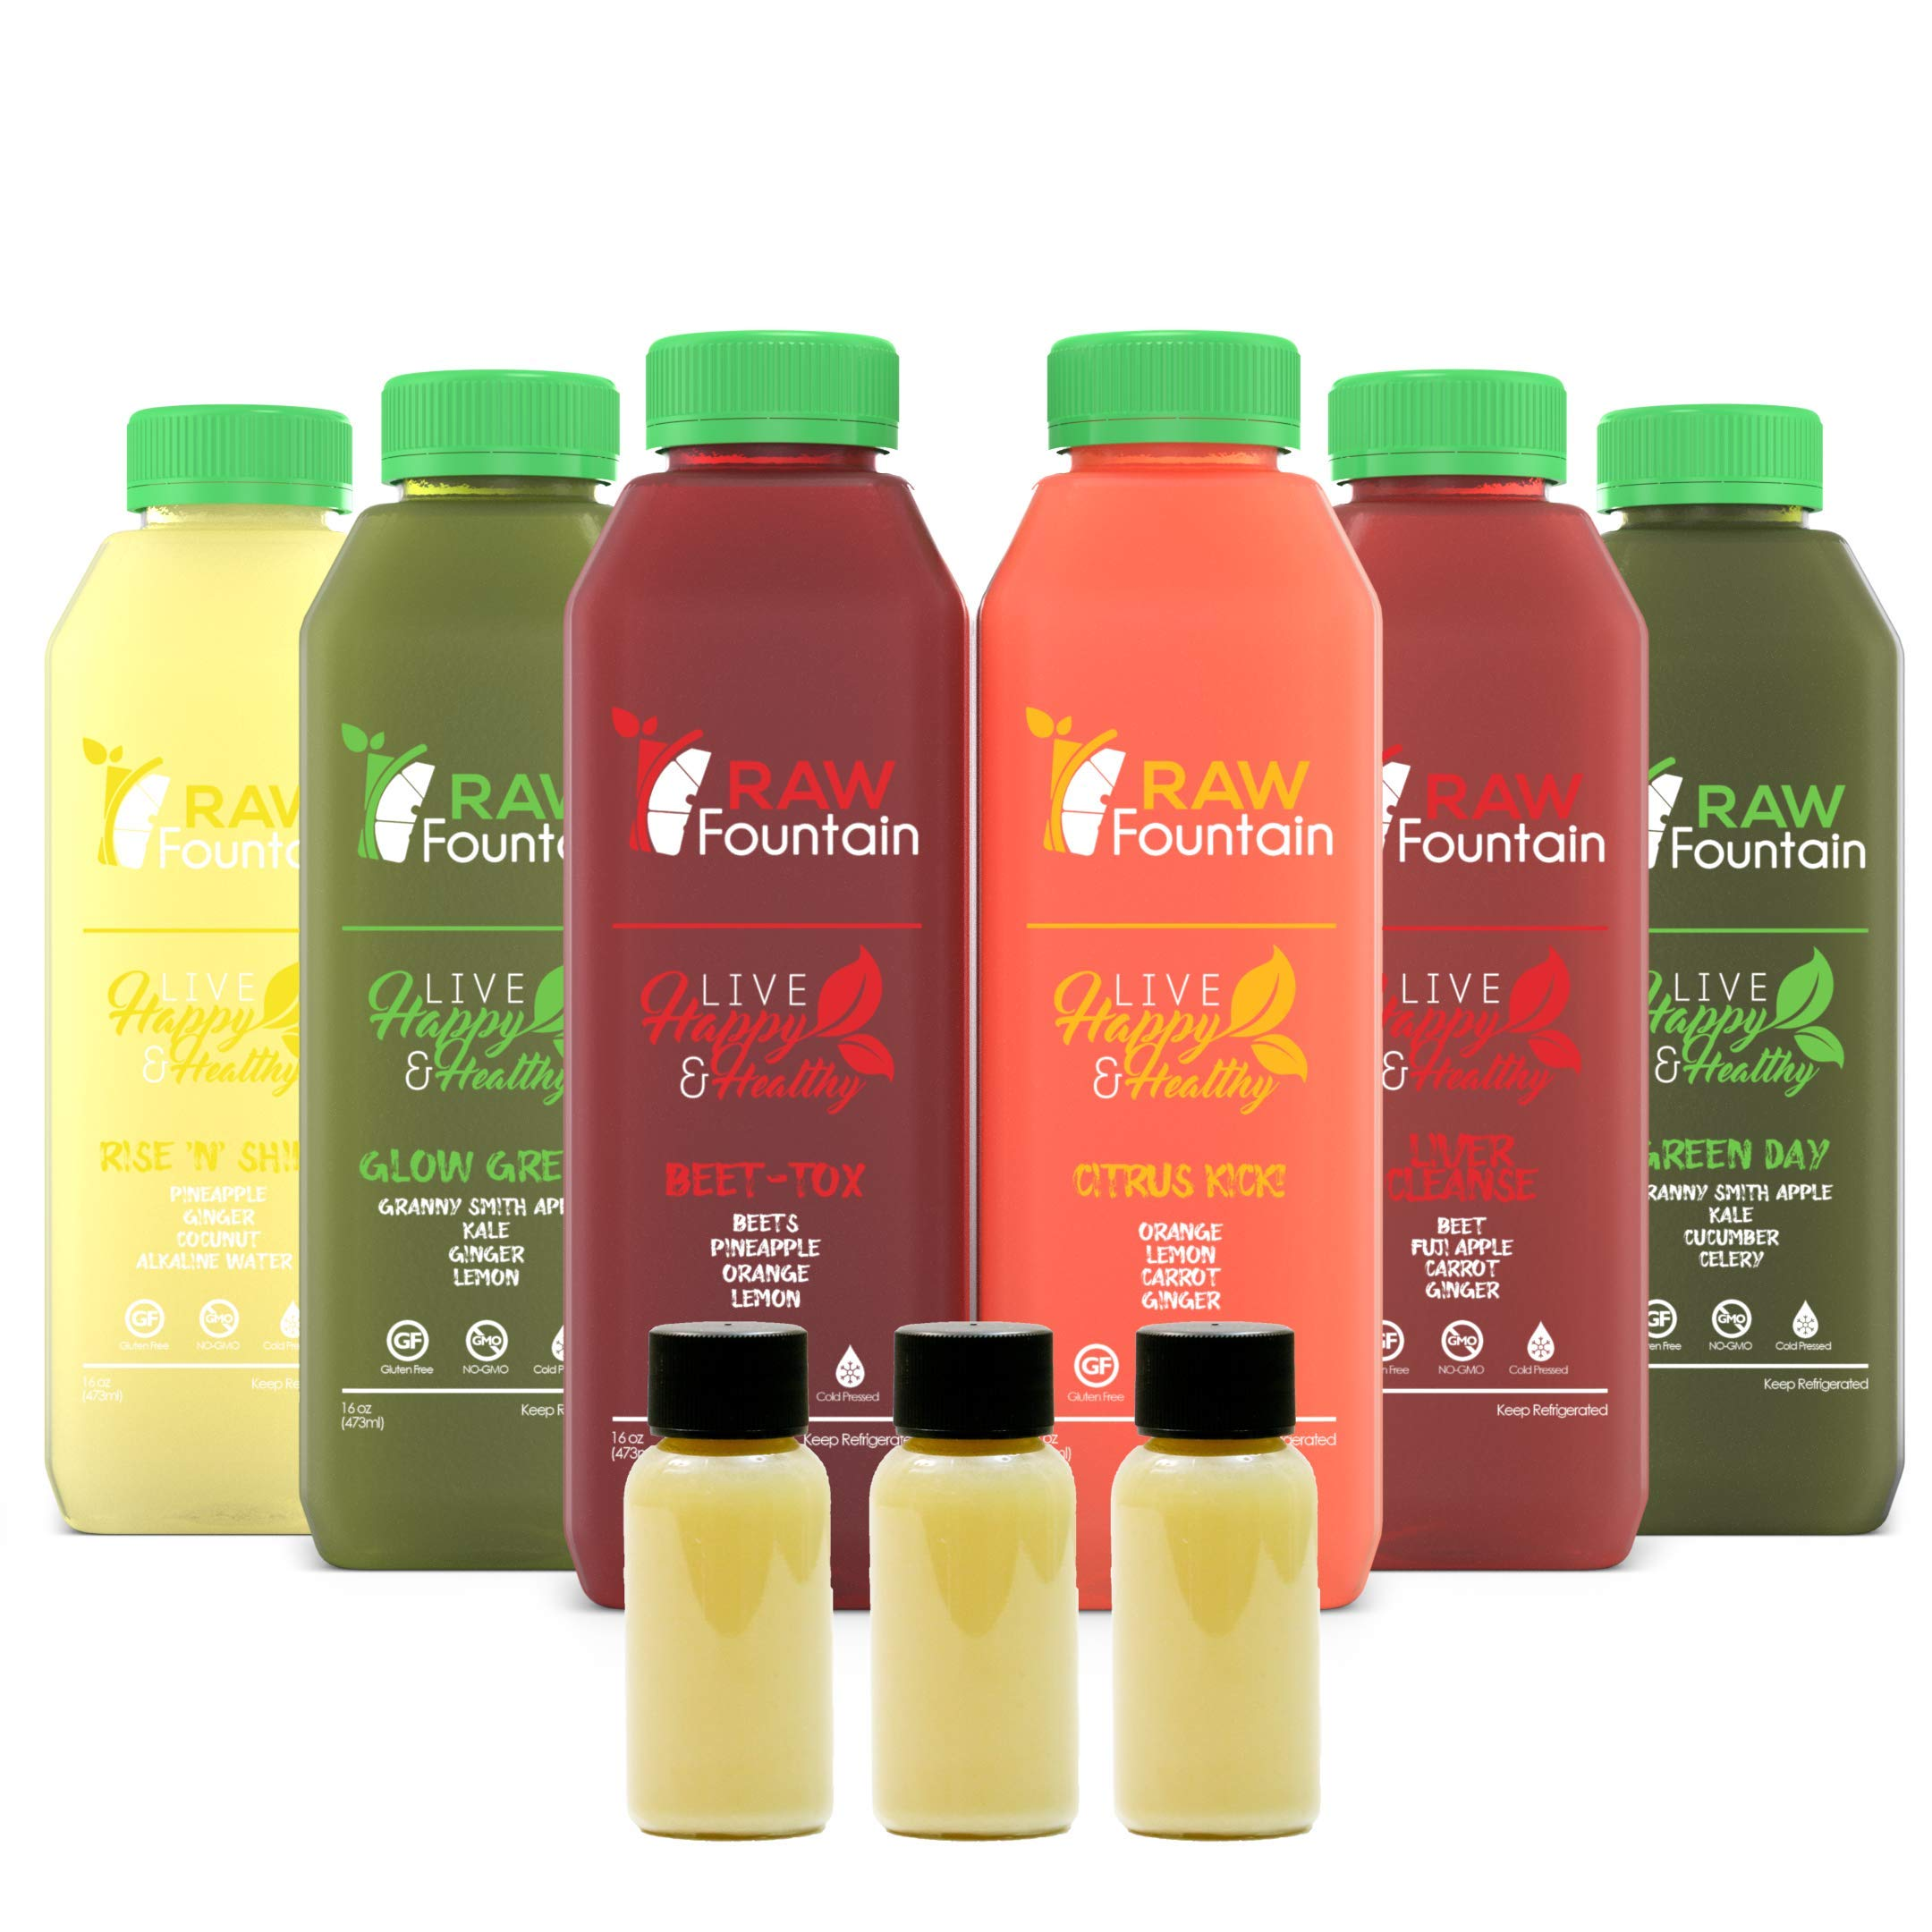 RAW Fountain 3 Day Juice Cleanse, 100% Natural Raw, Cold Pressed Fruit & Vegetable Juices, Detox Cleanse Weight Loss, 18 Bottles, 16oz +3 Ginger Shots by Raw Fountain